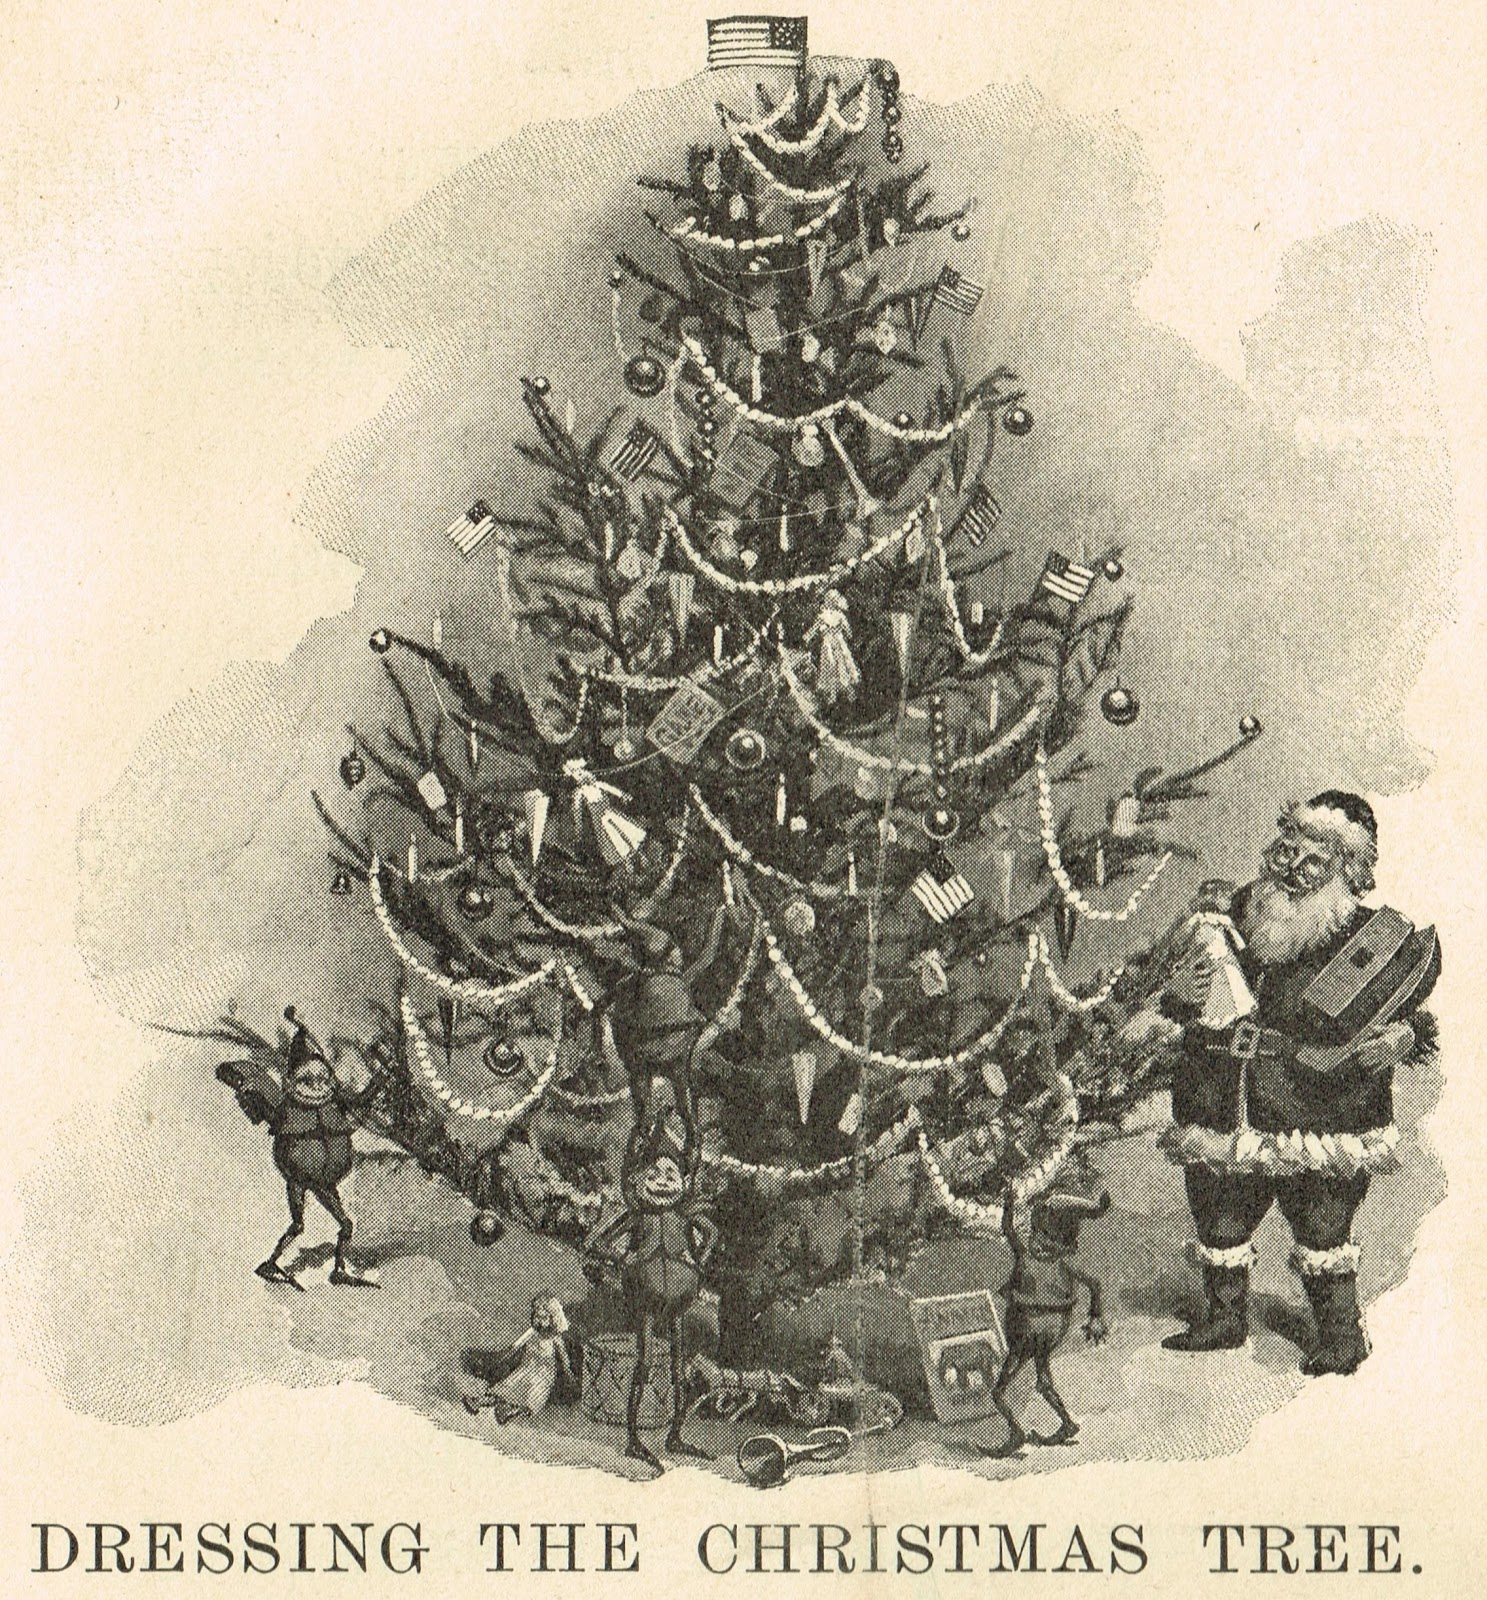 Antique Christmas Tree Printable Image - Knick of Time